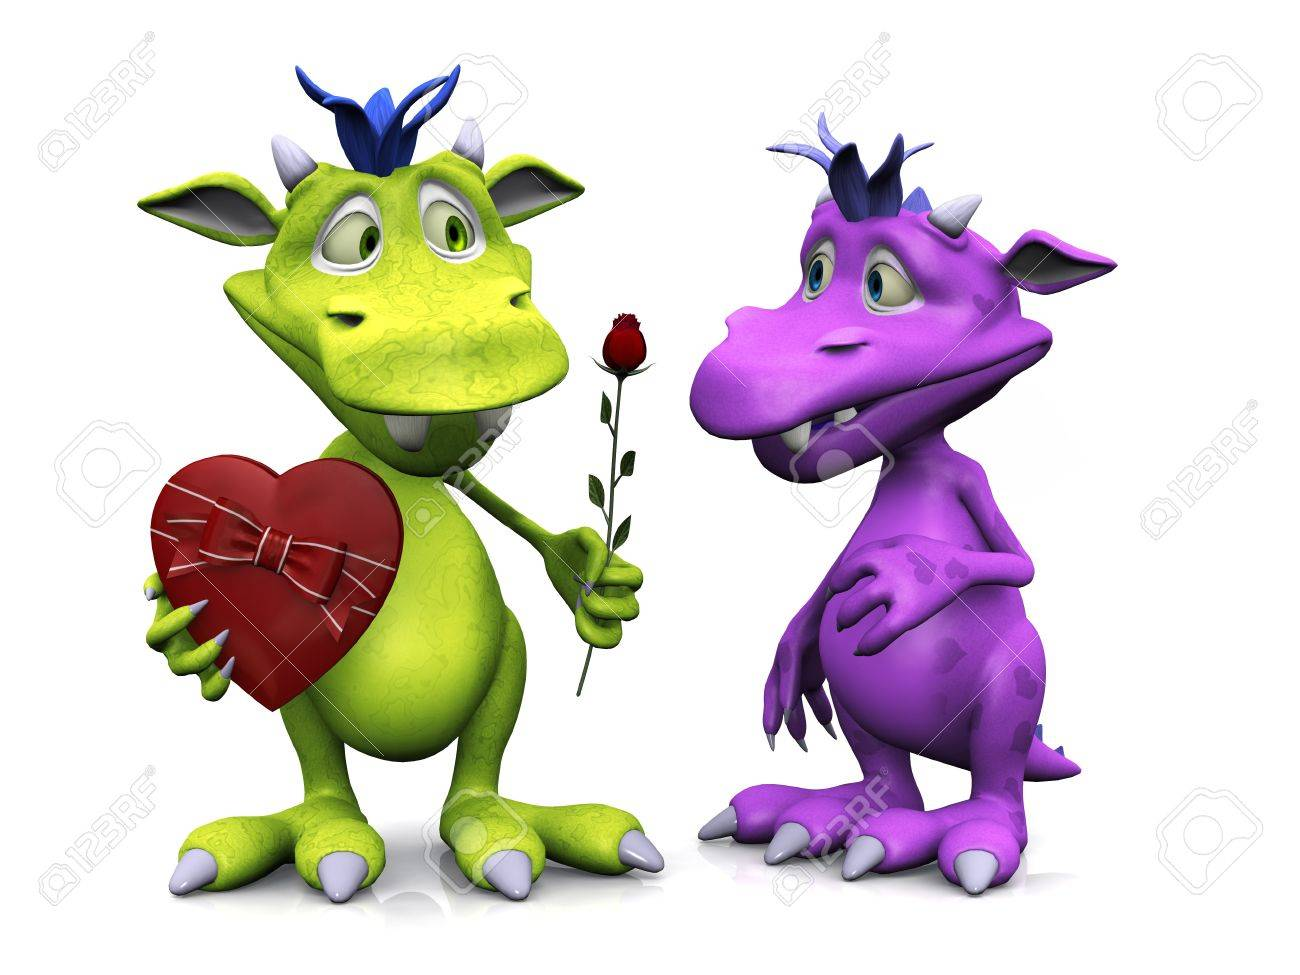 A cute friendly cartoon monster holding a rose in one hand and a heart shaped box of chocolate in the other. He is giving the rose to a girl monster. White background. Stock Photo - 12323283